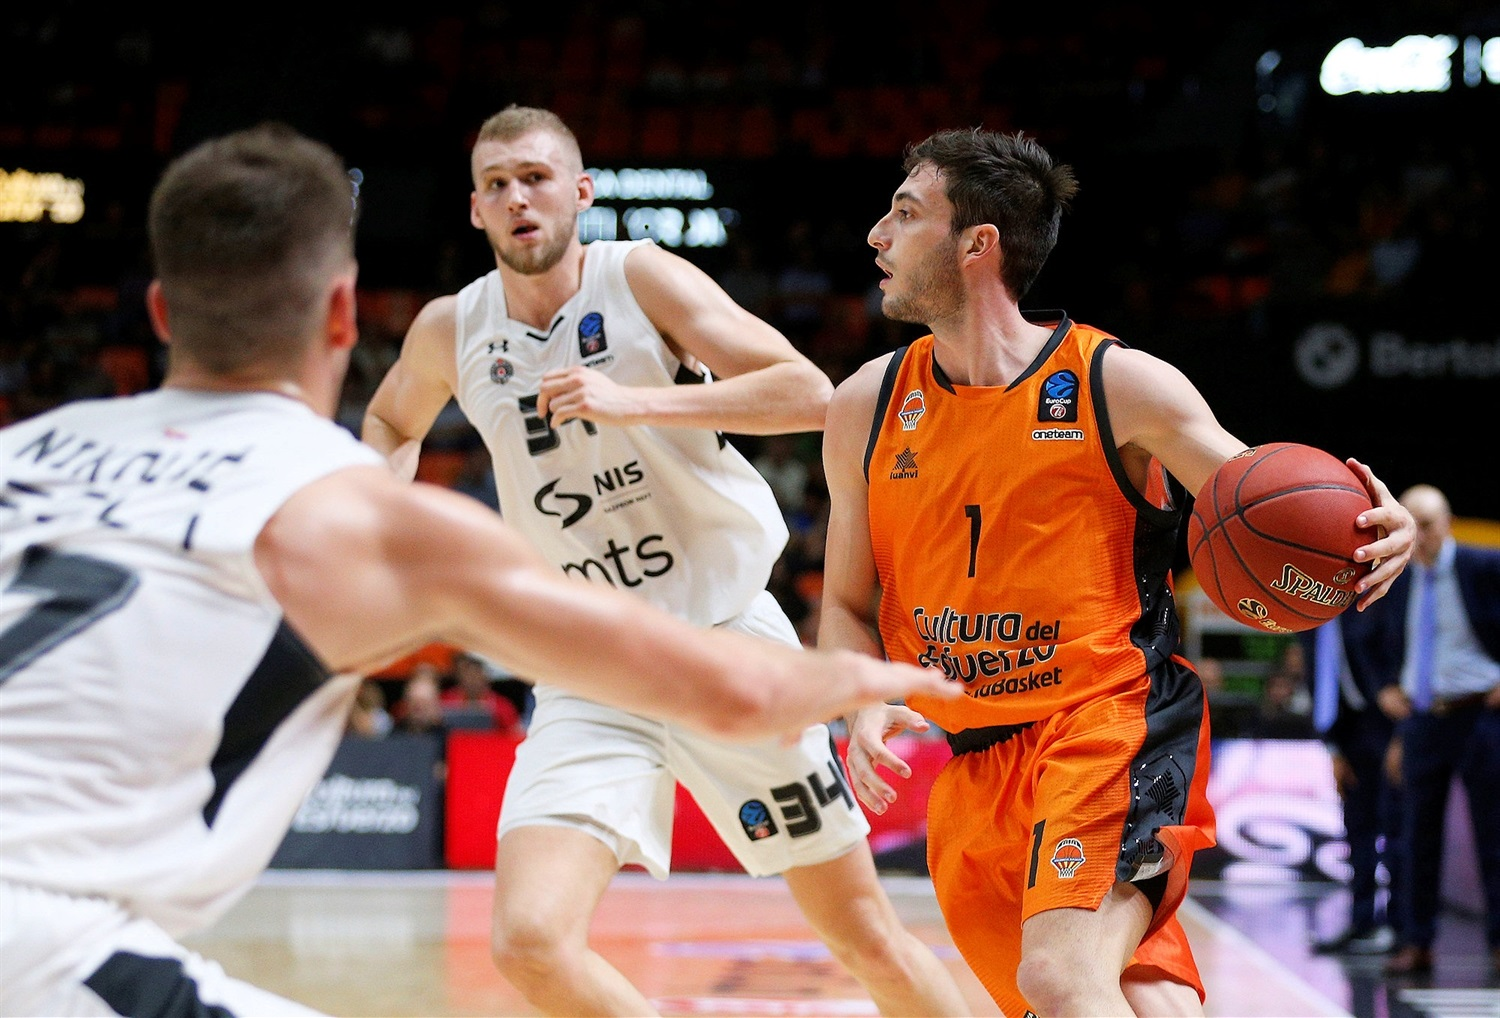 Sergi Garcia - Valencia Basket (photo Valencia) - EC18